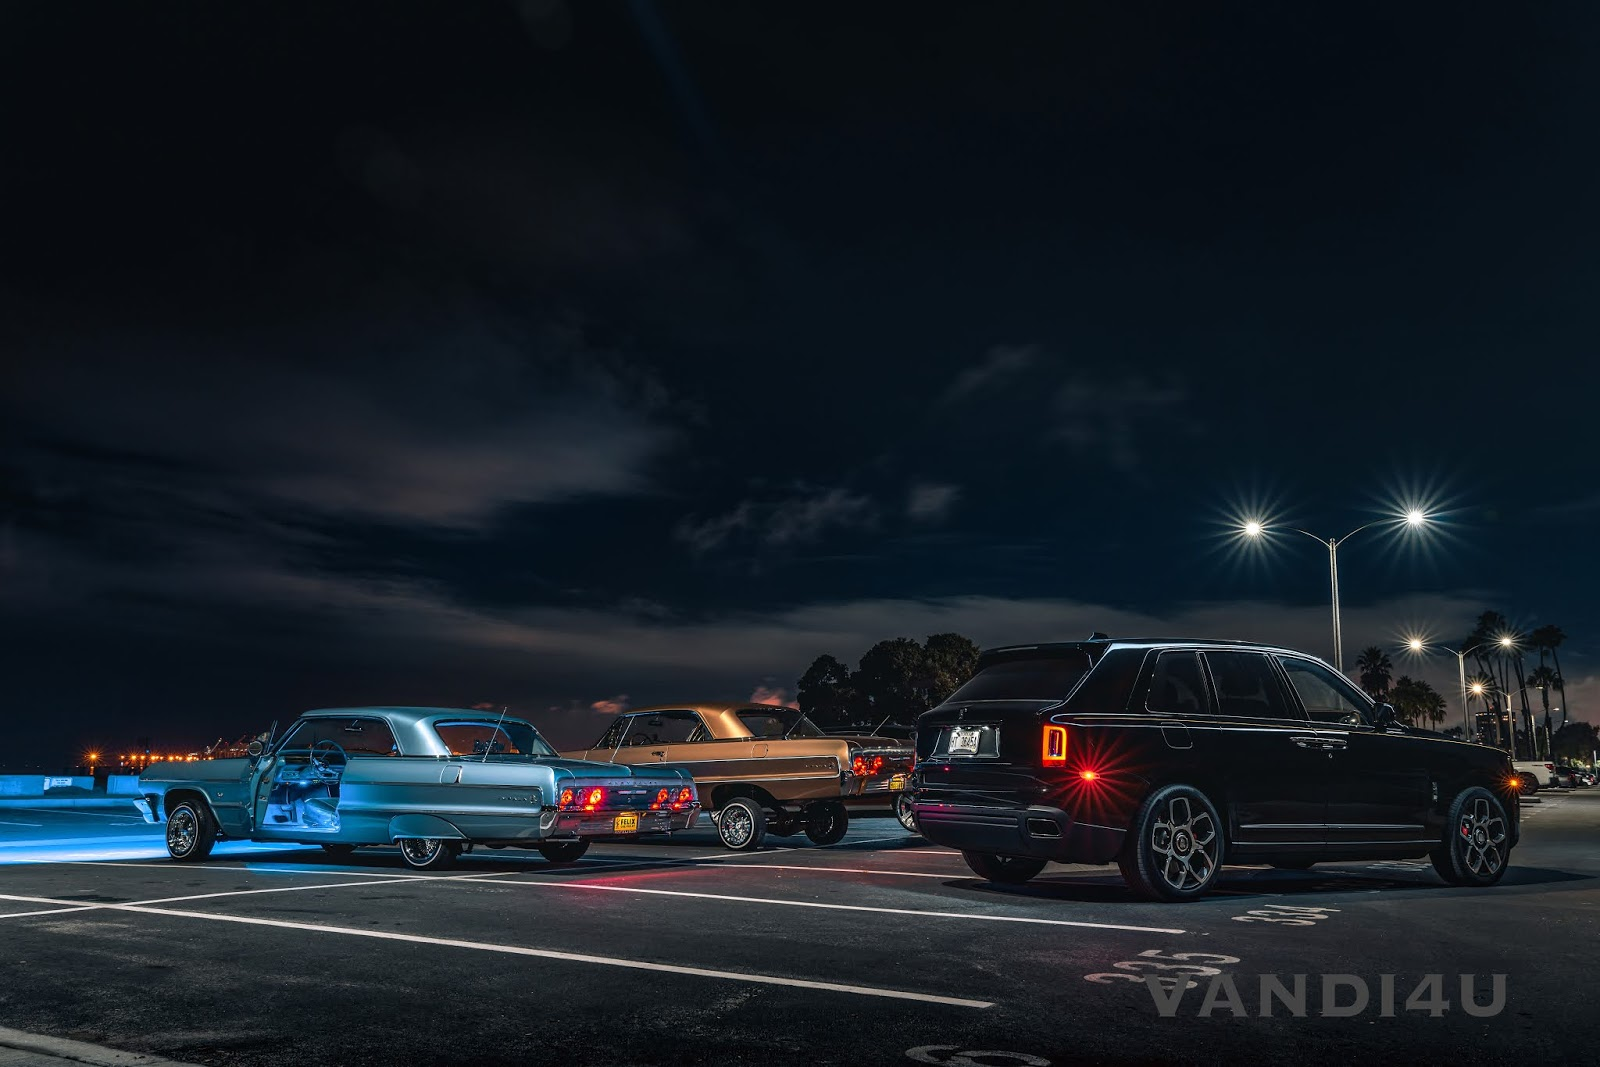 """Rolls Royce plans to conduct """"King of the Night"""" exhibition during March 2020   VANDI4U"""